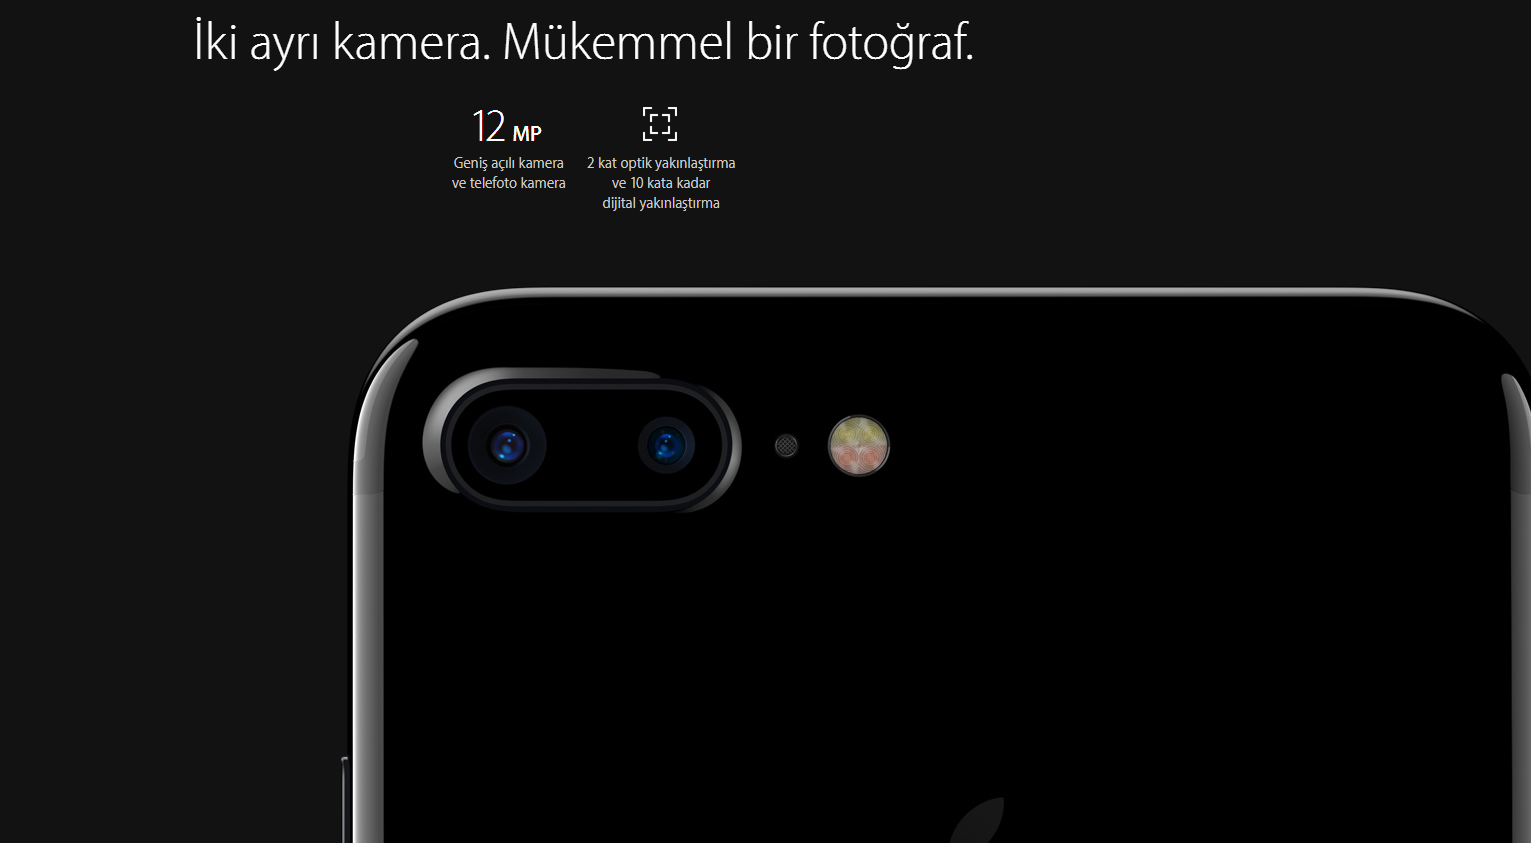 iphone 7 plus kamera